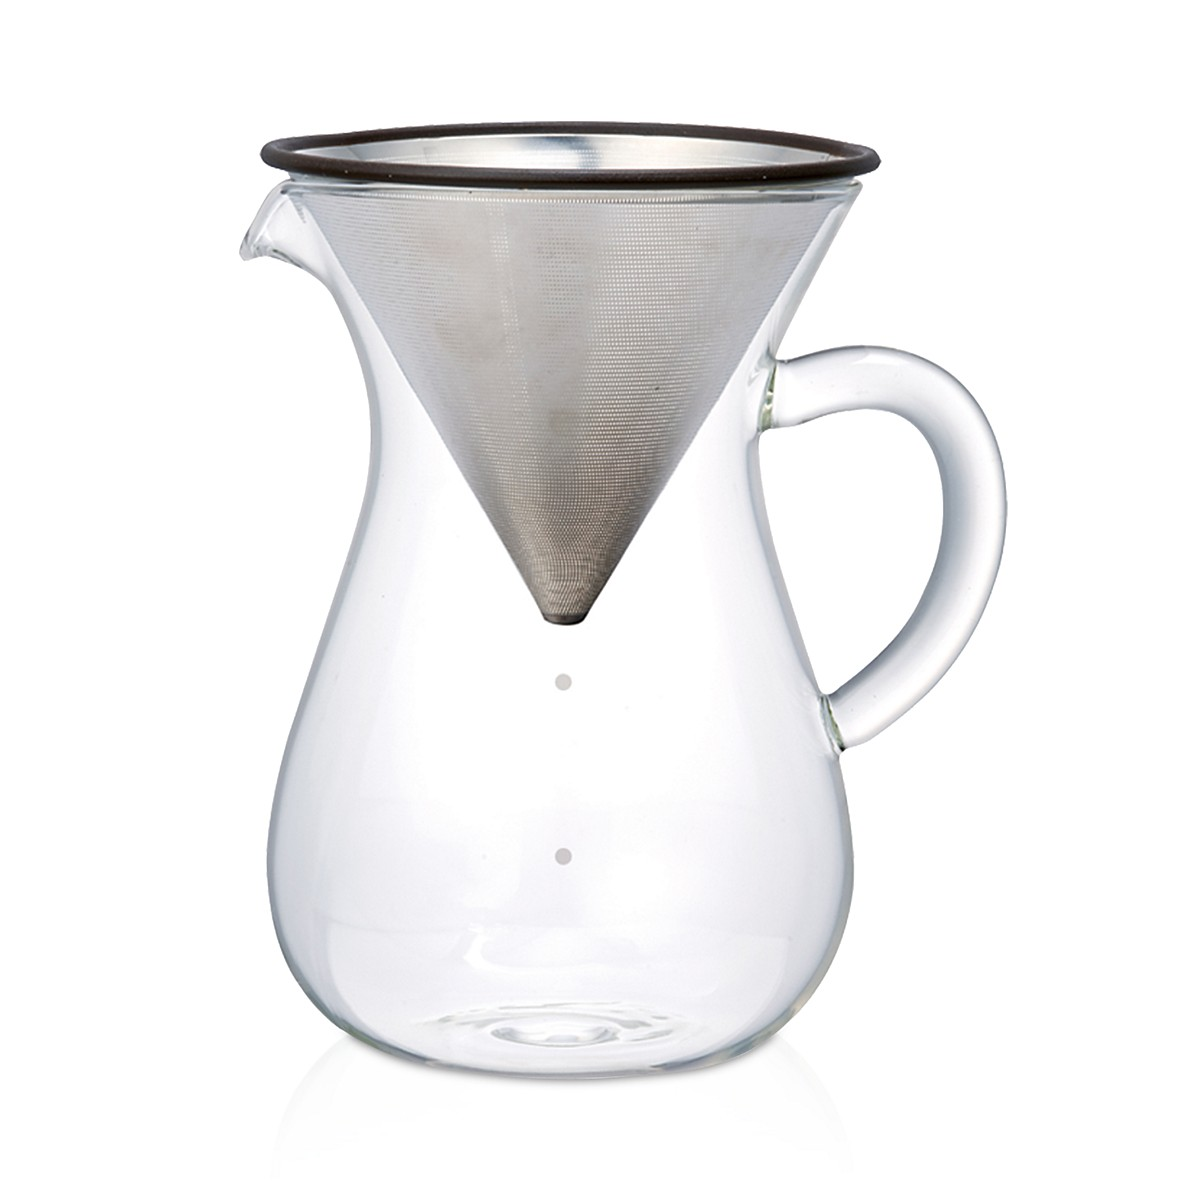 <p>Bloomingdale's Kinto simply chic carafe set provides style and the full-bodied taste of slow-drip coffee.{&amp;nbsp;} The set comes with a stainless steel filter and table service-ready carafe. The coffee lover on your list will be impressed by the thoughtful gift.{&amp;nbsp;} (Image: Bloomingdale's)</p>